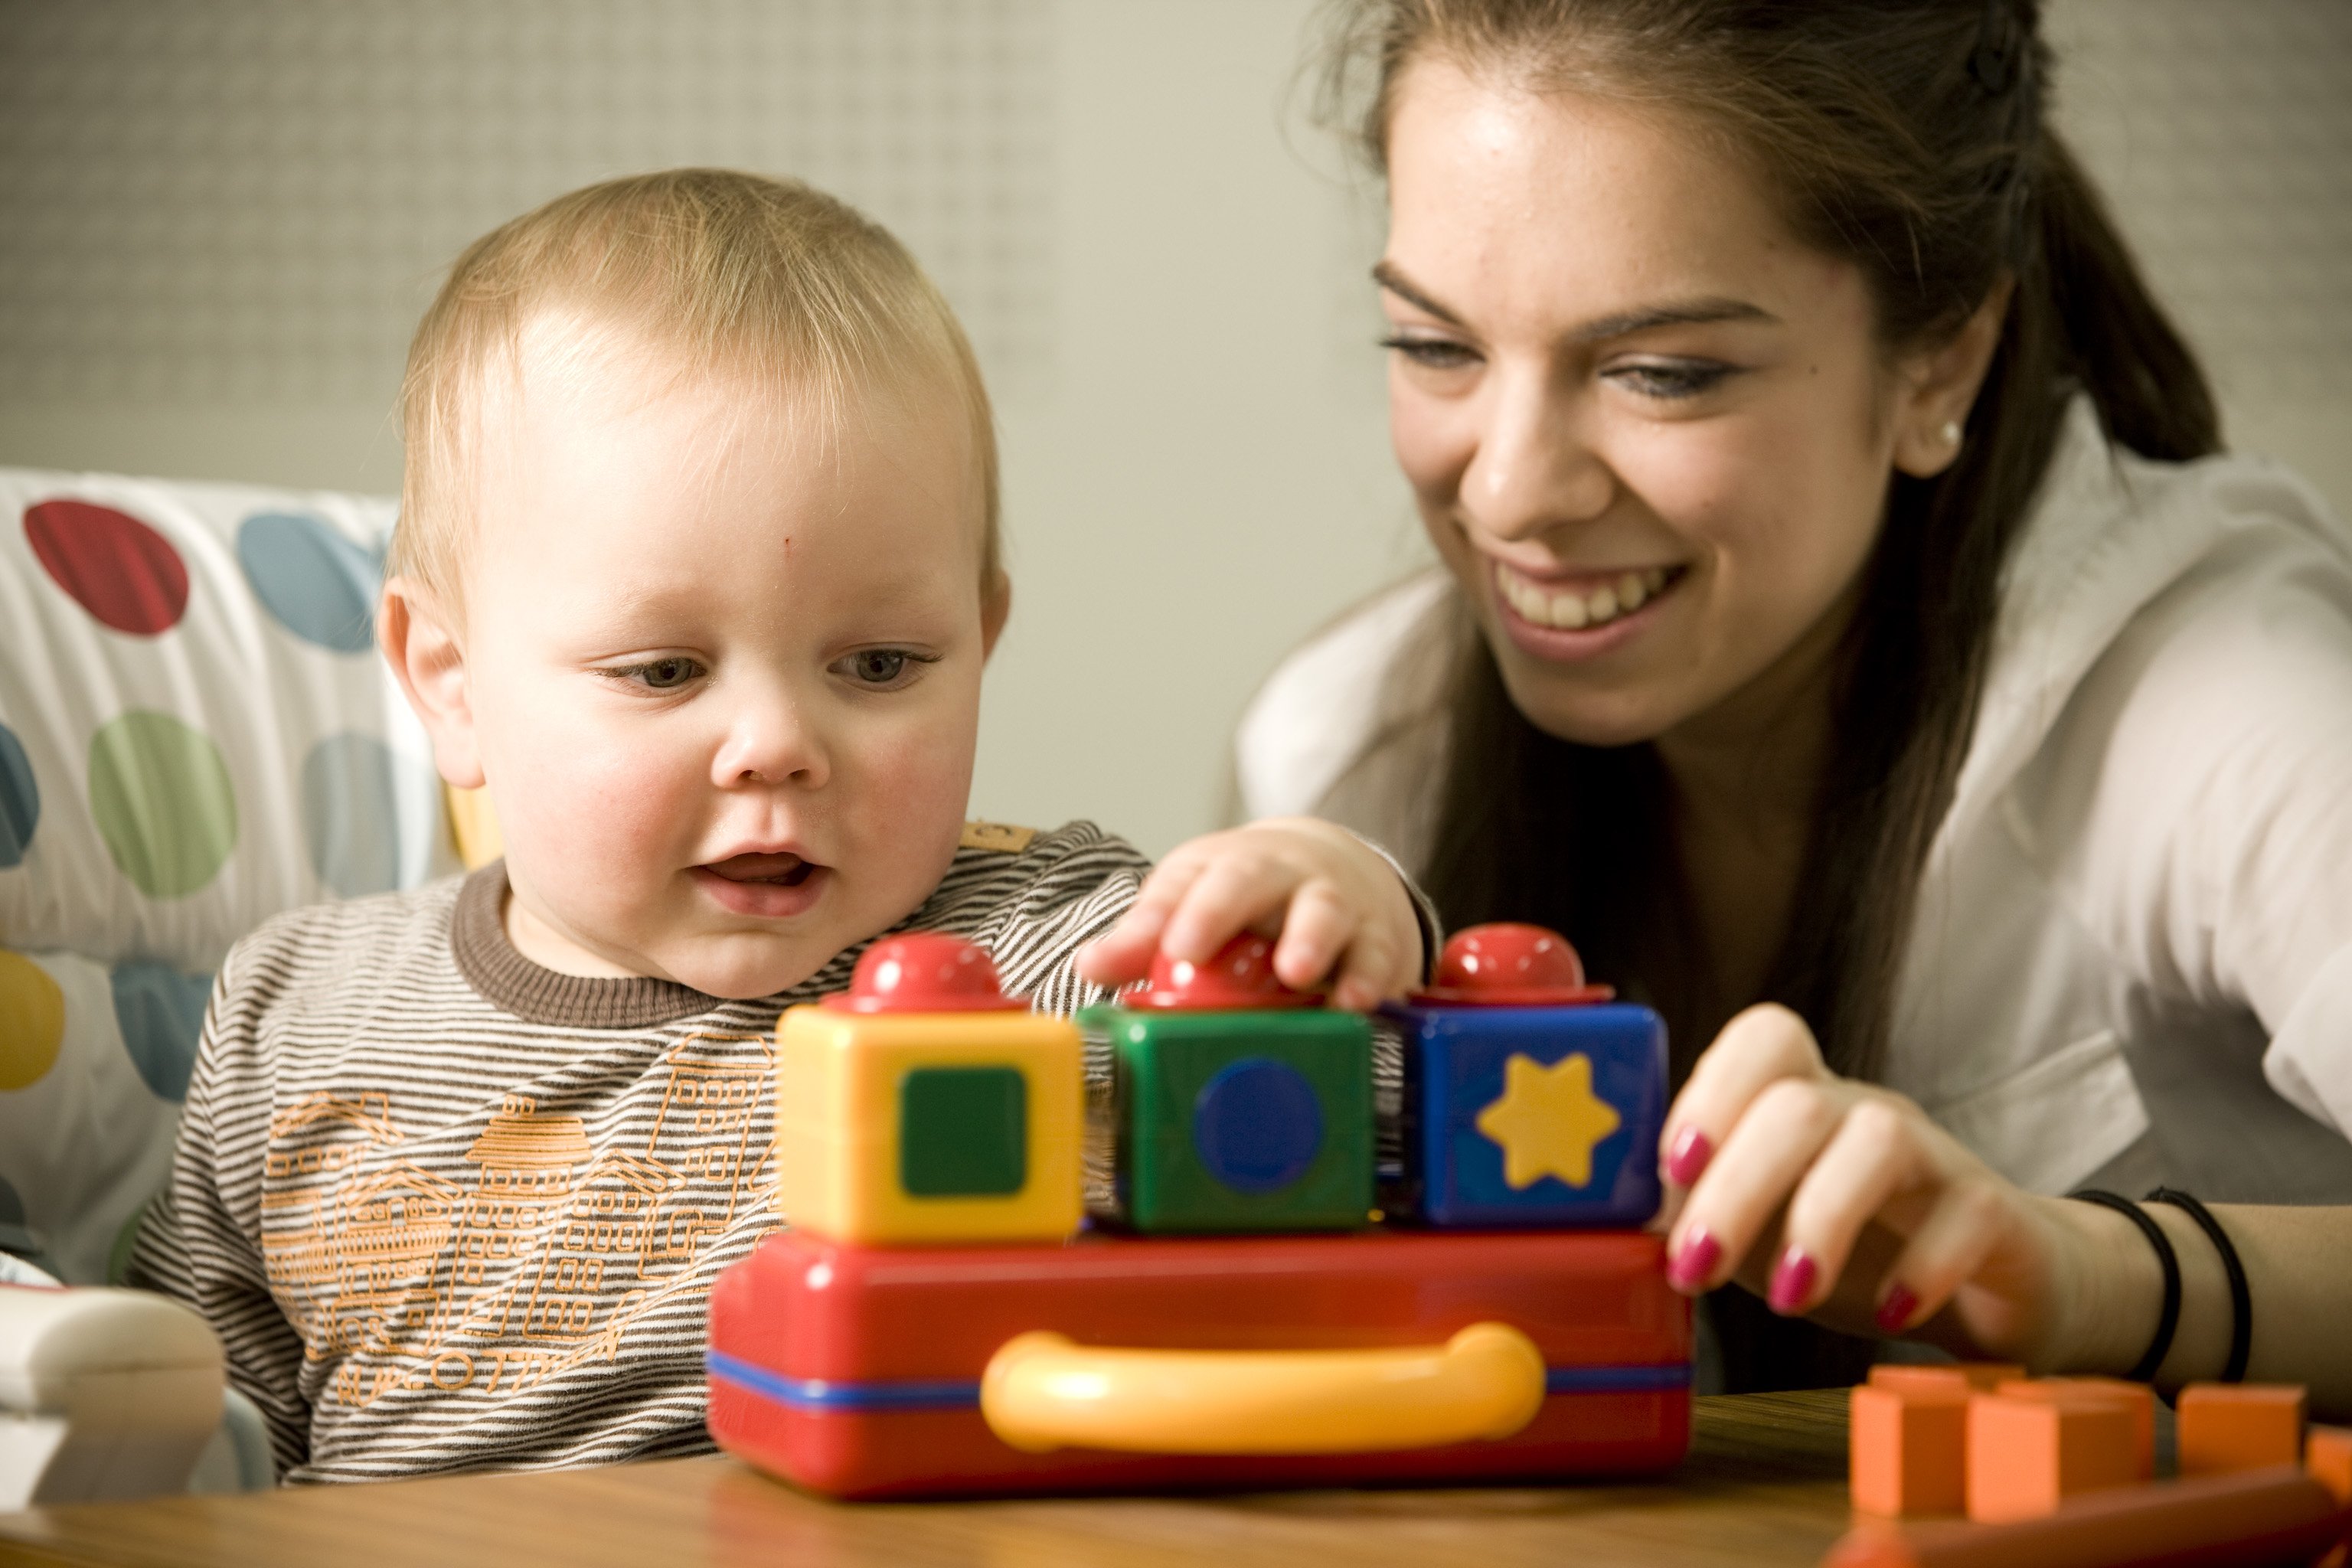 Could early infant screening and intervention help prevent autism